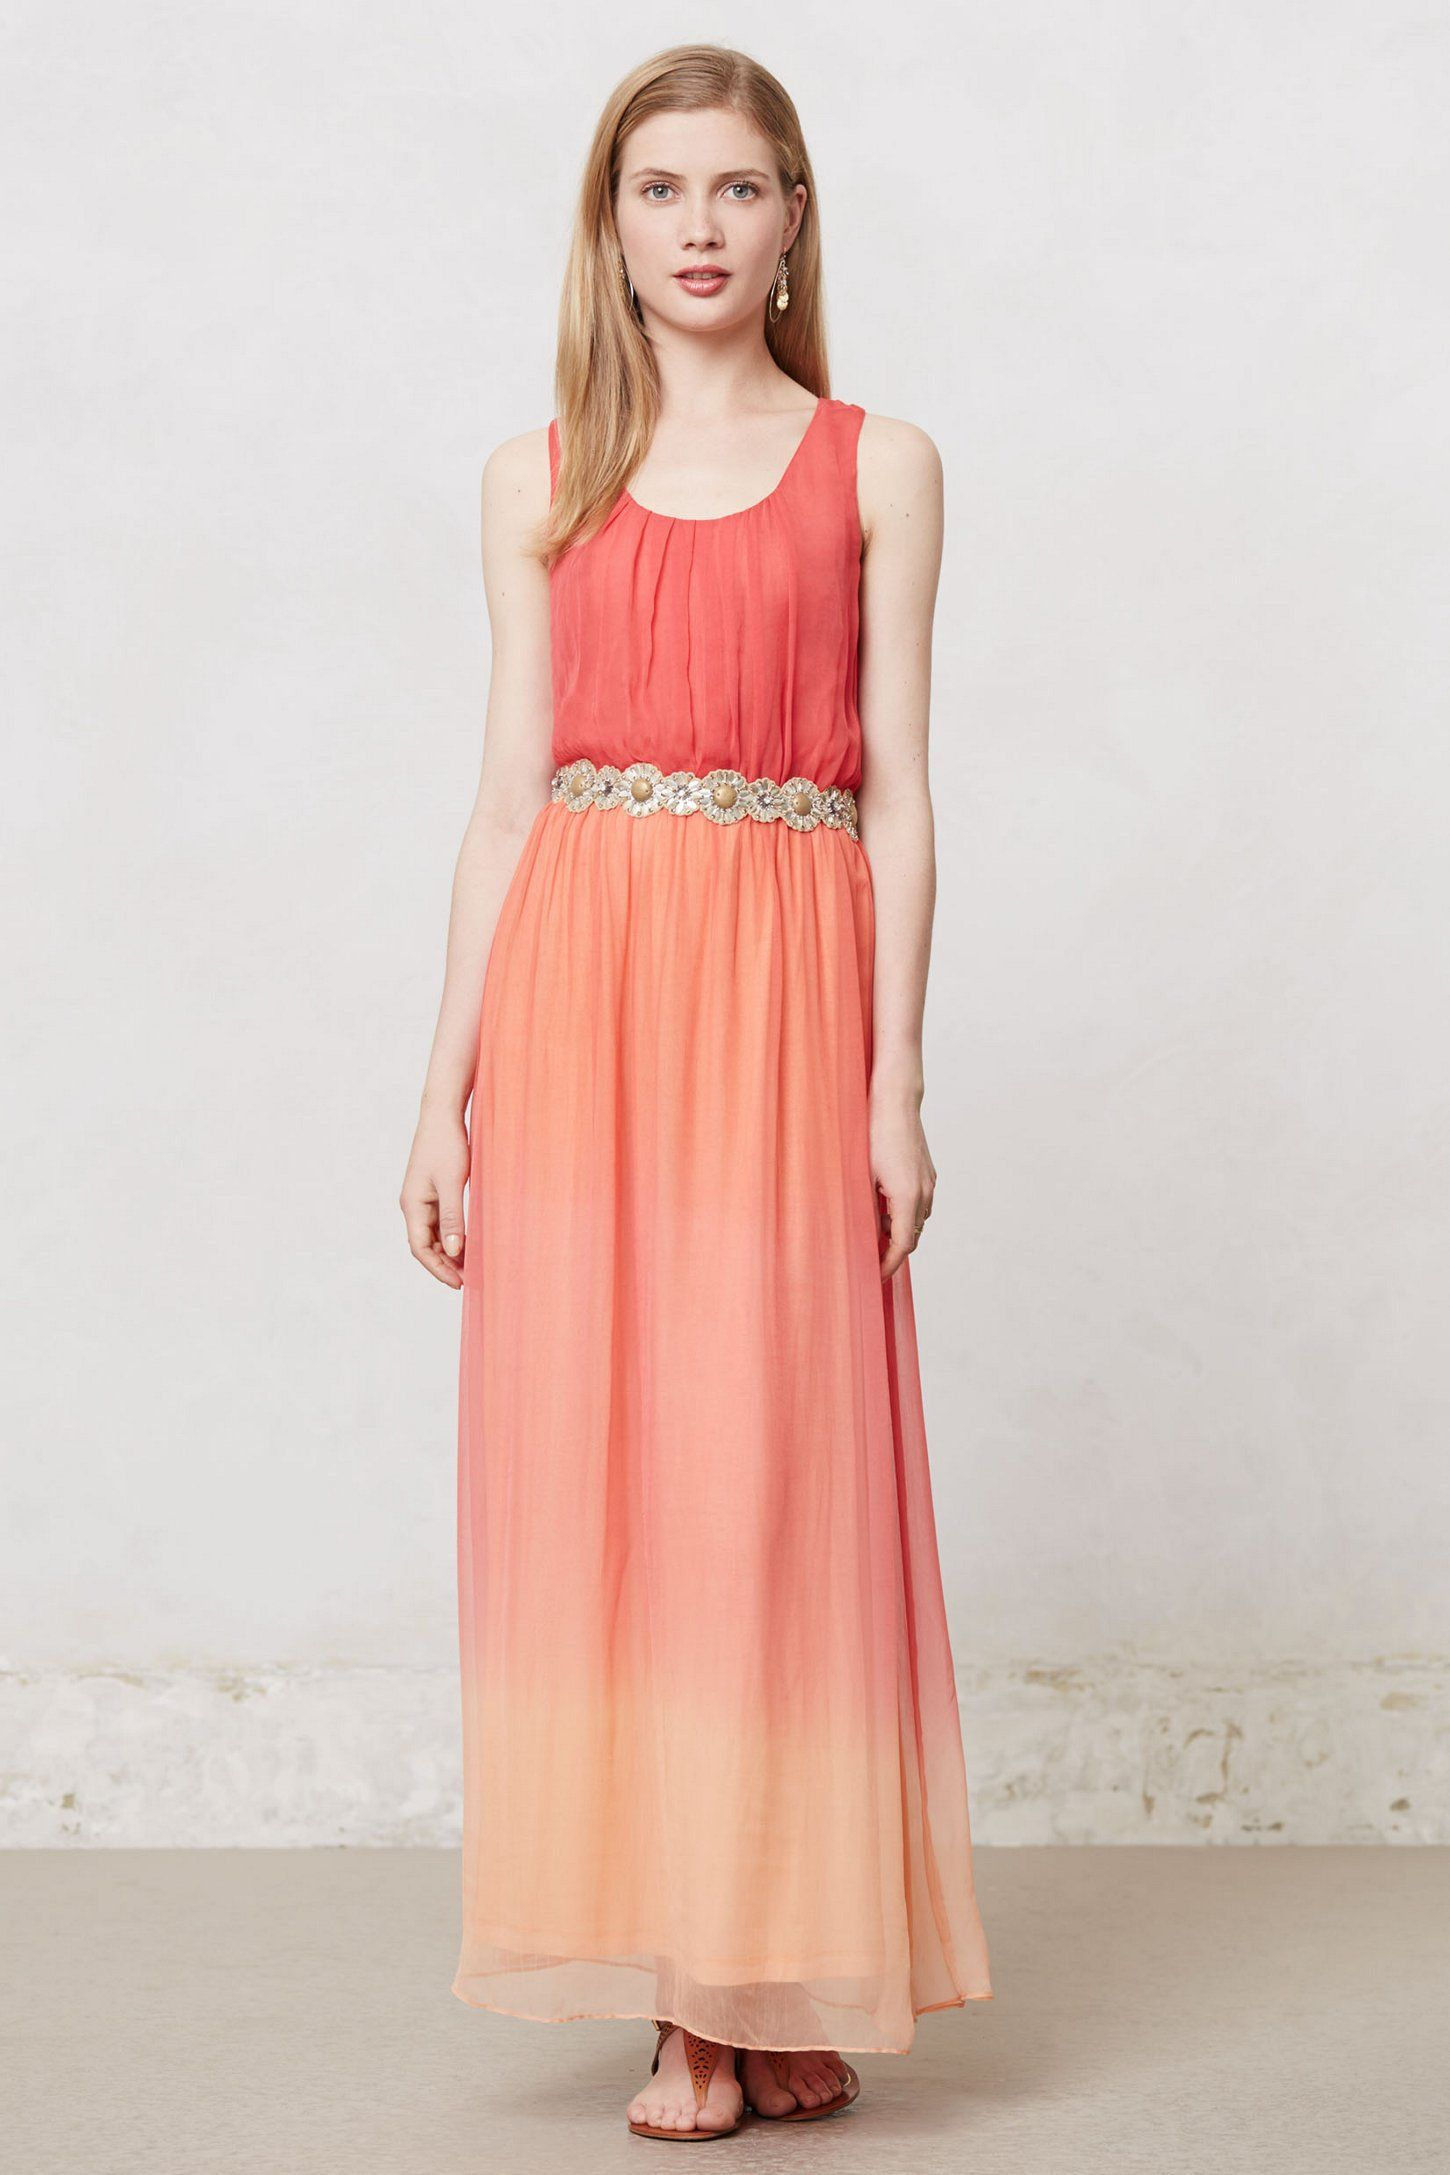 7e3b568f75f5 My five favorite affordable maxi dresses currently on my shopping list from  Anthropologie, Target, Asos, Victoria's Secret and Piperlime